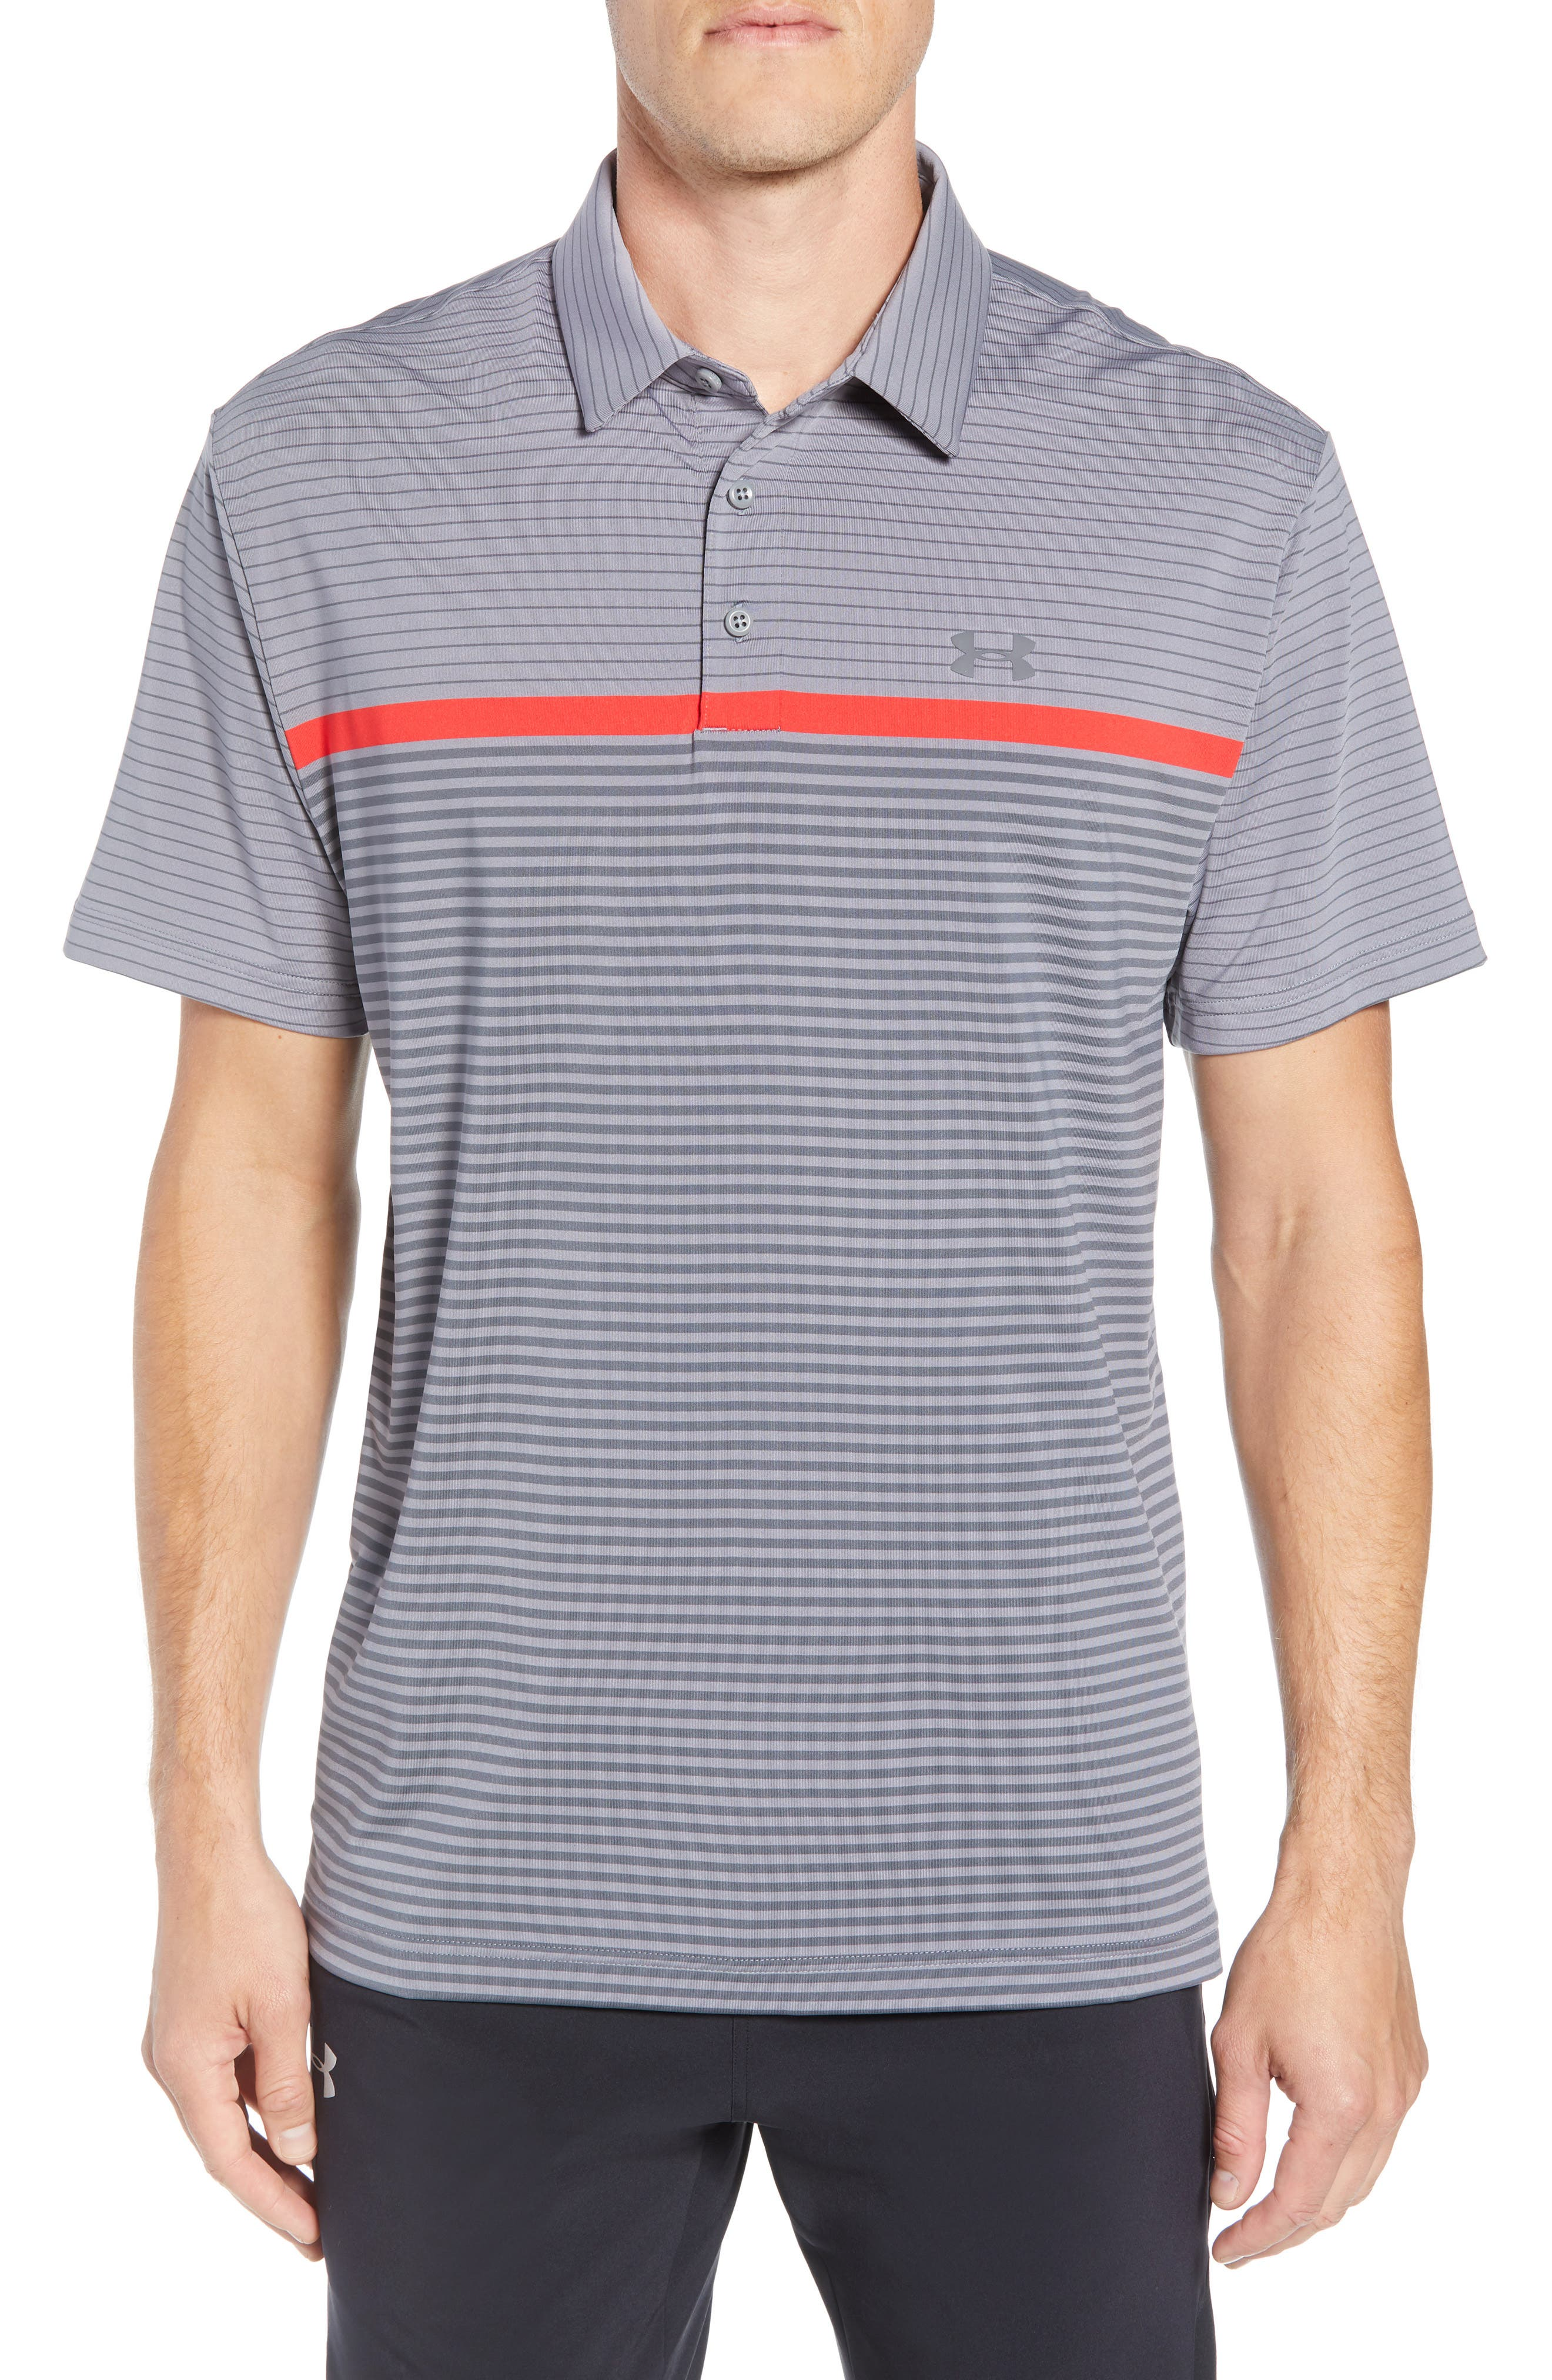 'Playoff' Loose Fit Short Sleeve Polo, Main, color, 020